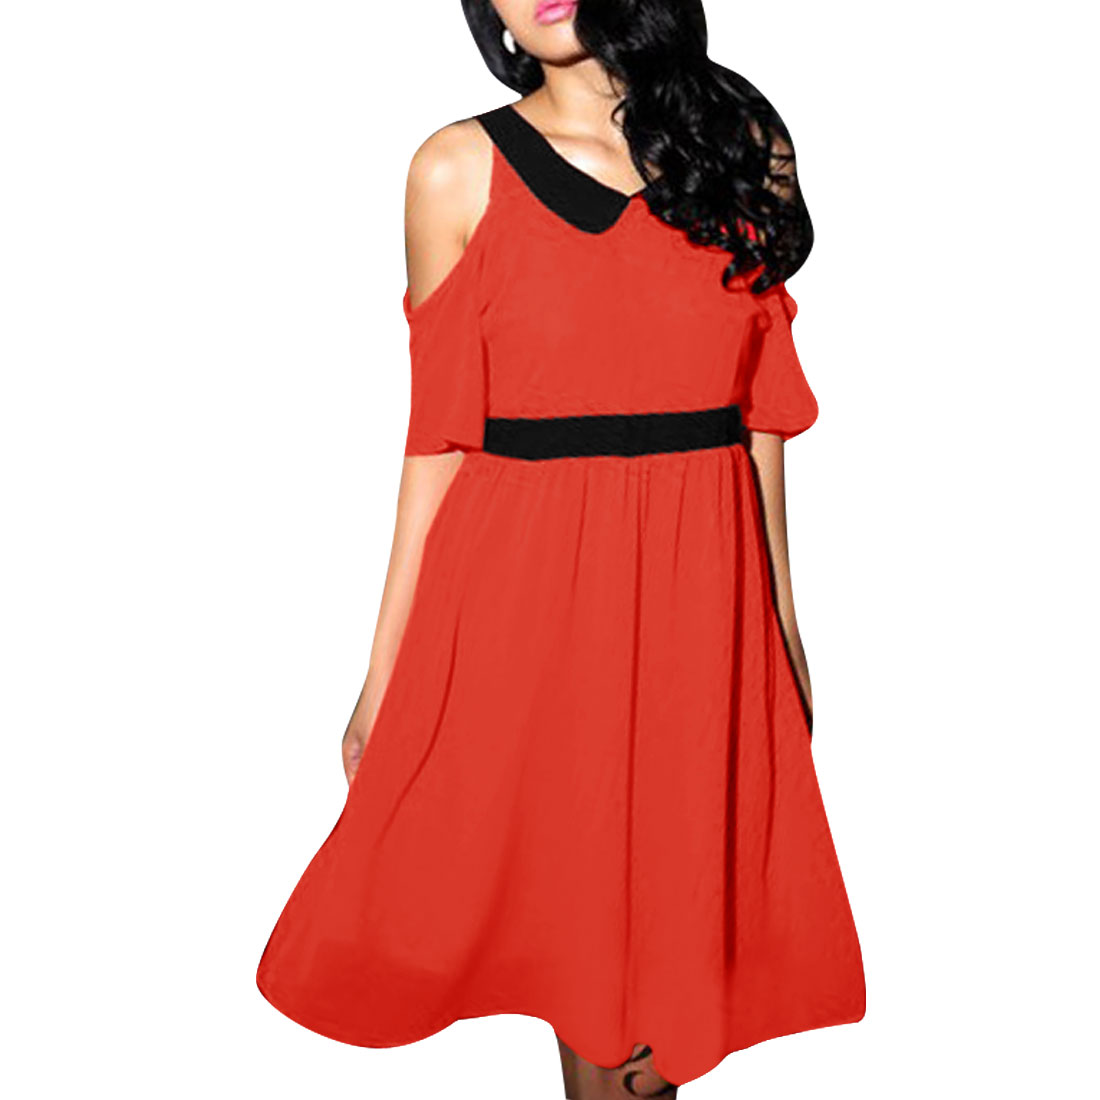 Women Cut Out Shoulder Peter Pan Collar Style Pullover Dress Orange Red XS